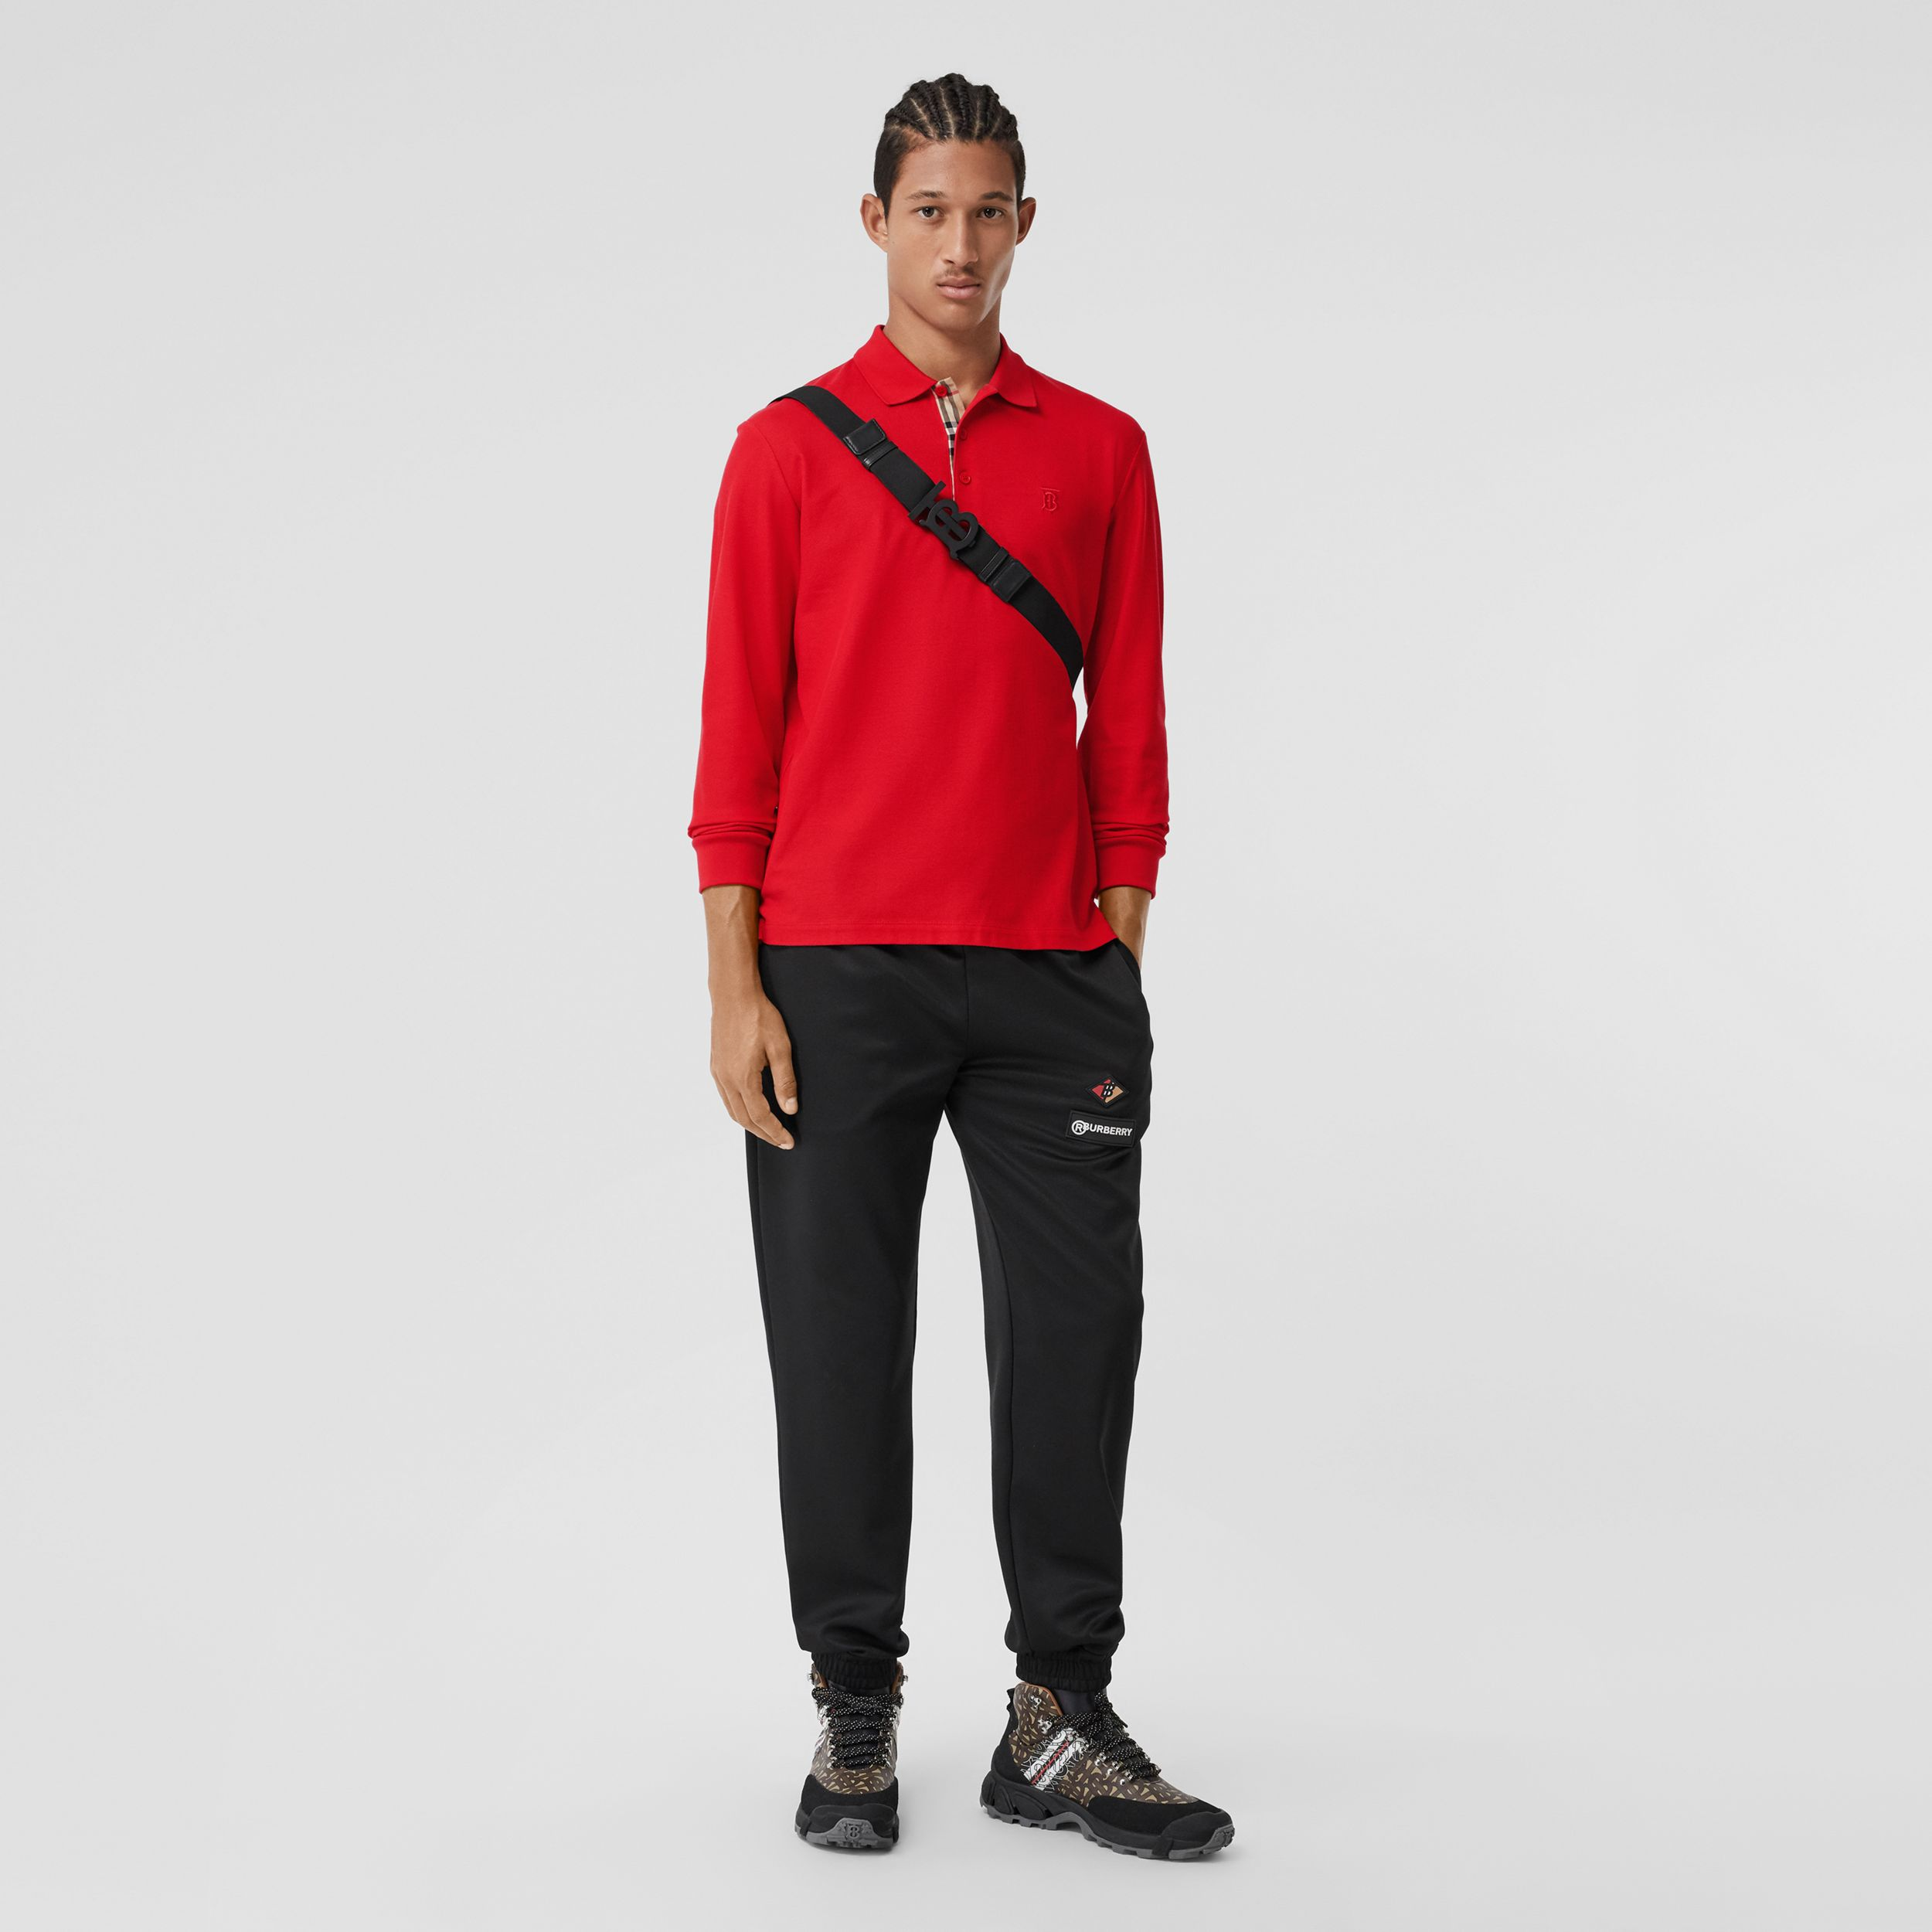 Long-sleeve Monogram Motif Cotton Piqué Polo Shirt in Bright Red - Men | Burberry - 1